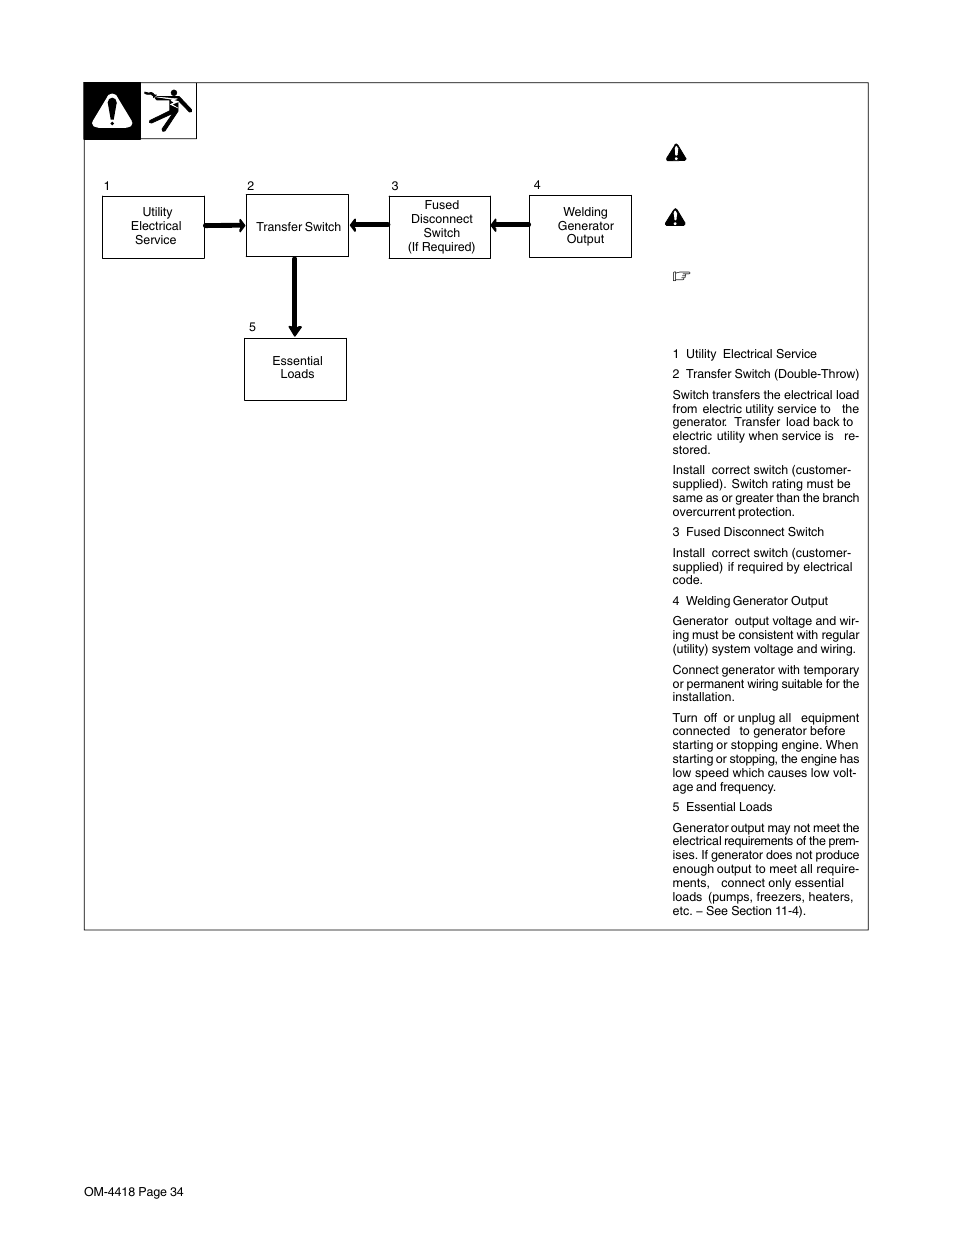 Typical Wiring Diagram Welder Generator Page 5 Welding Avr Schematic Diagrams Source 10 Connections To Supply Standby Power Hobart Rh Manuair Com Parts